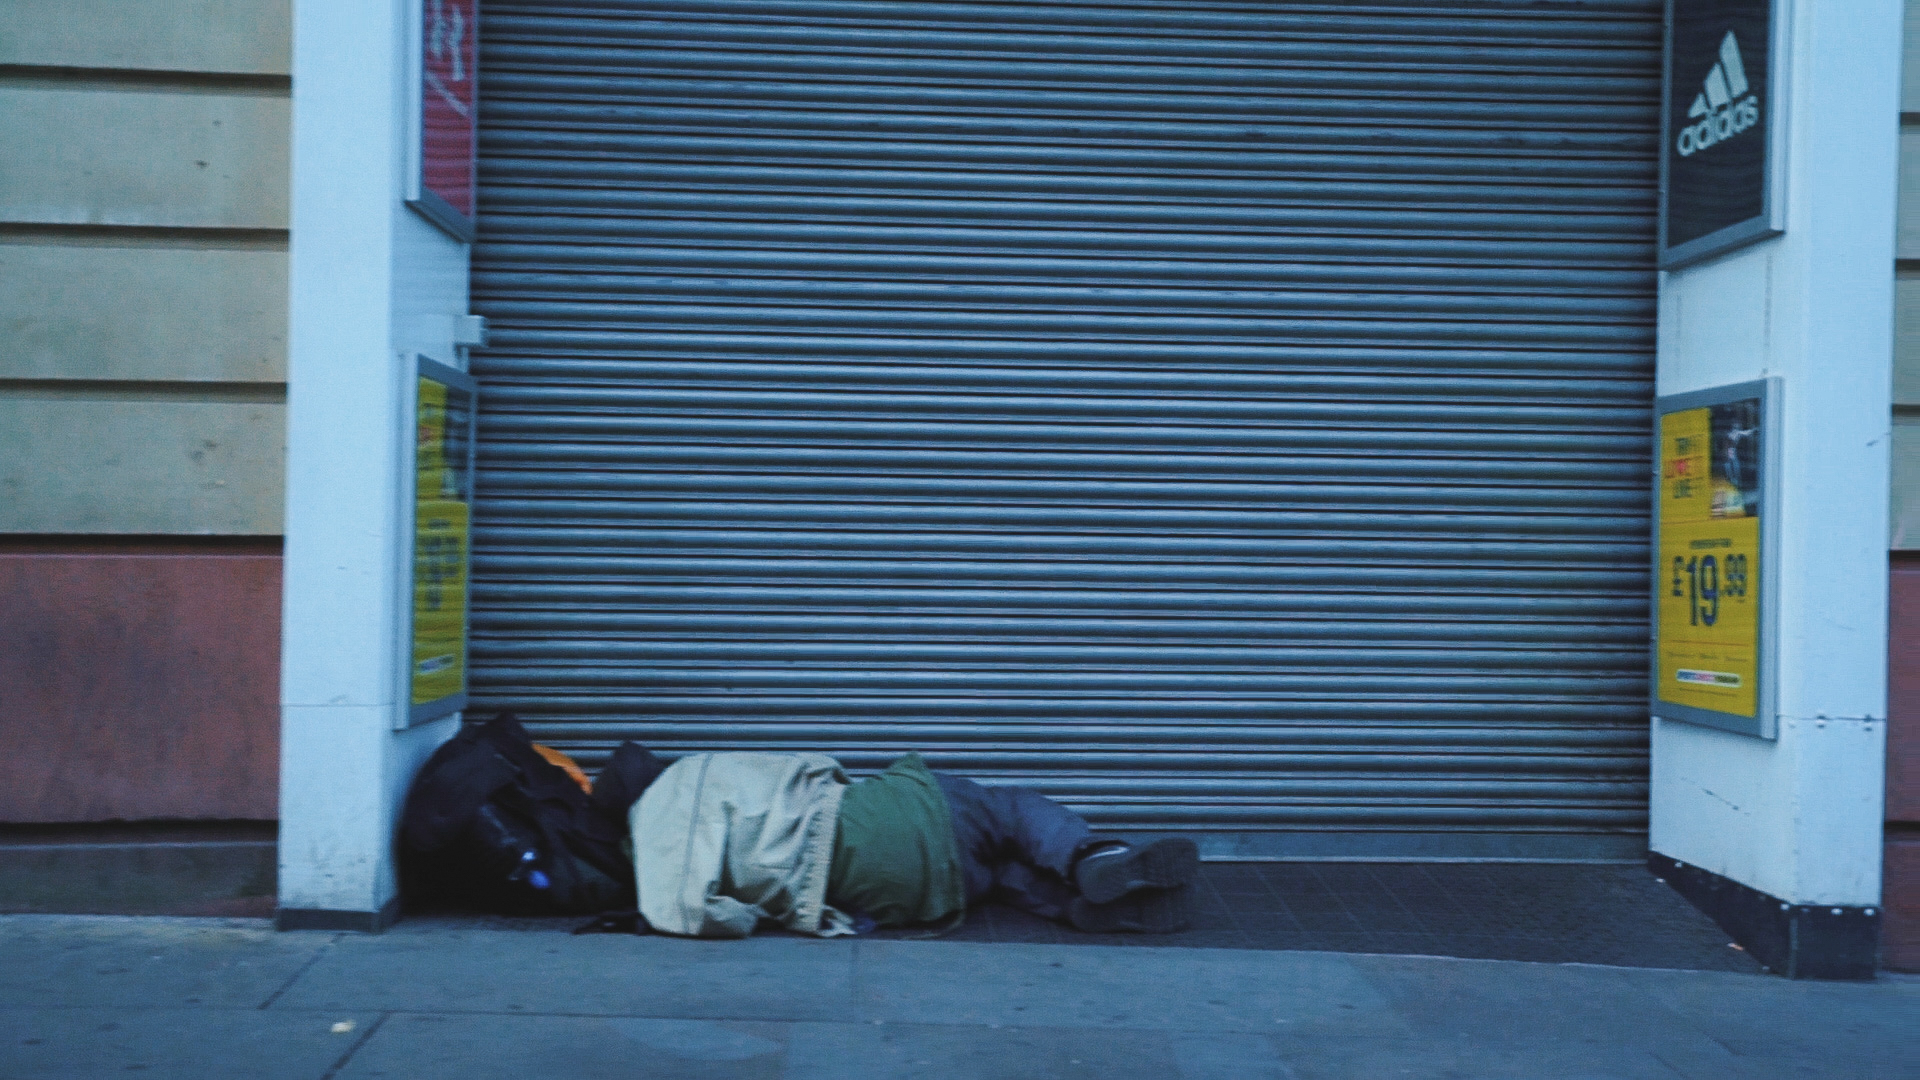 Rough sleeper in Manchester, during spice epidemic